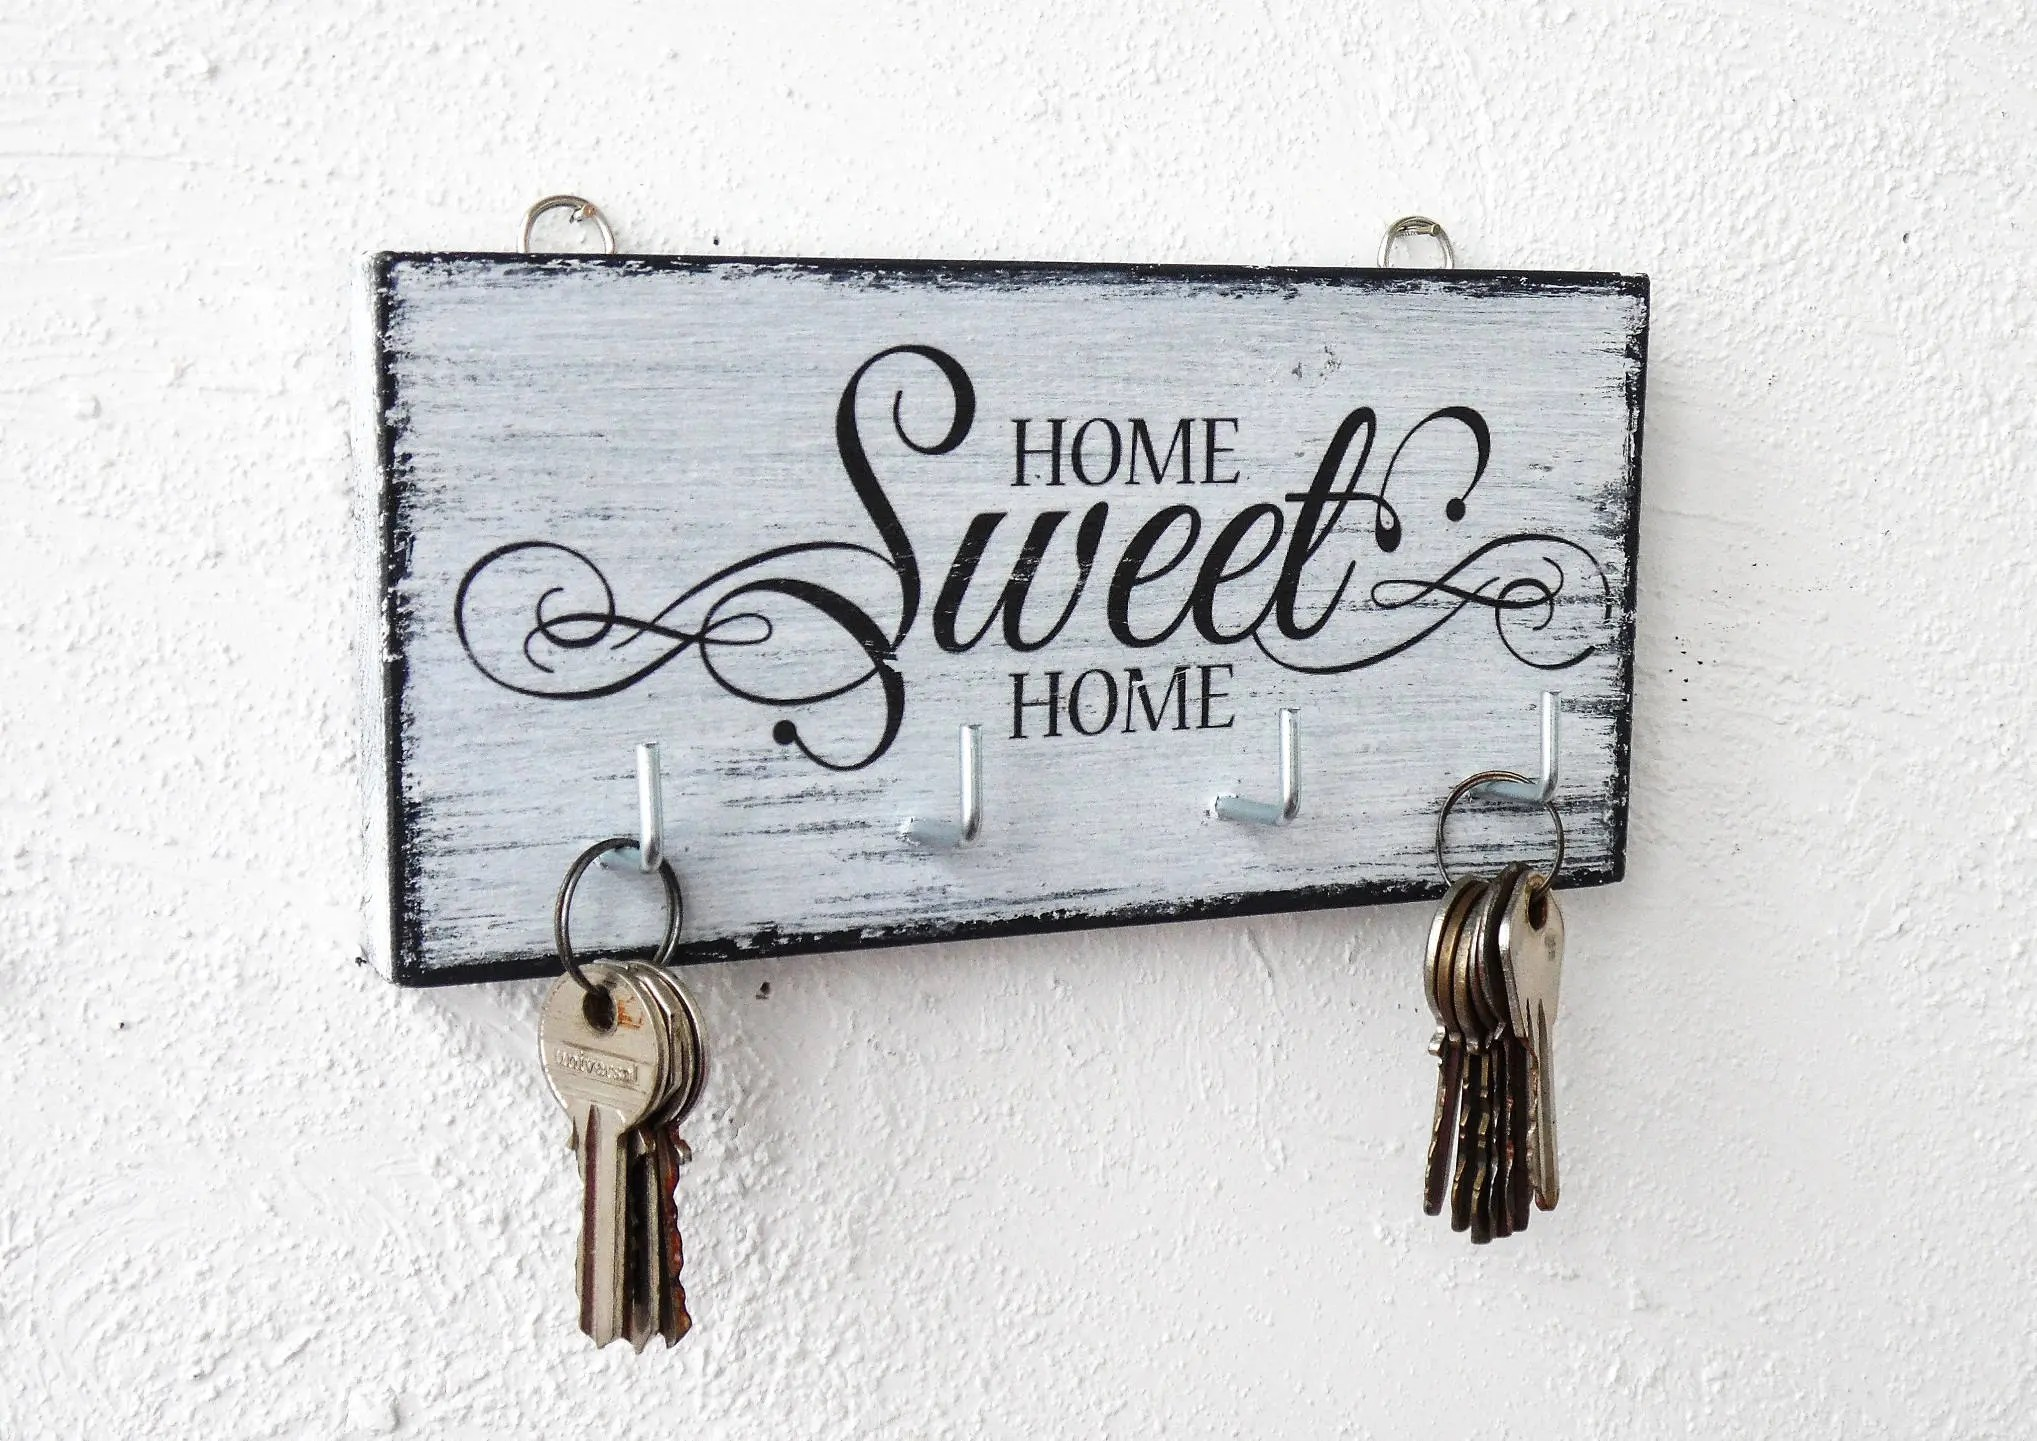 Home Key Holder For Wall Home Sweet Home Key Hanger Wall White Wood Key Holder For Wall Shabby Wood Cottage Chic Housewarming Gift Key Hook Black And White Organizer